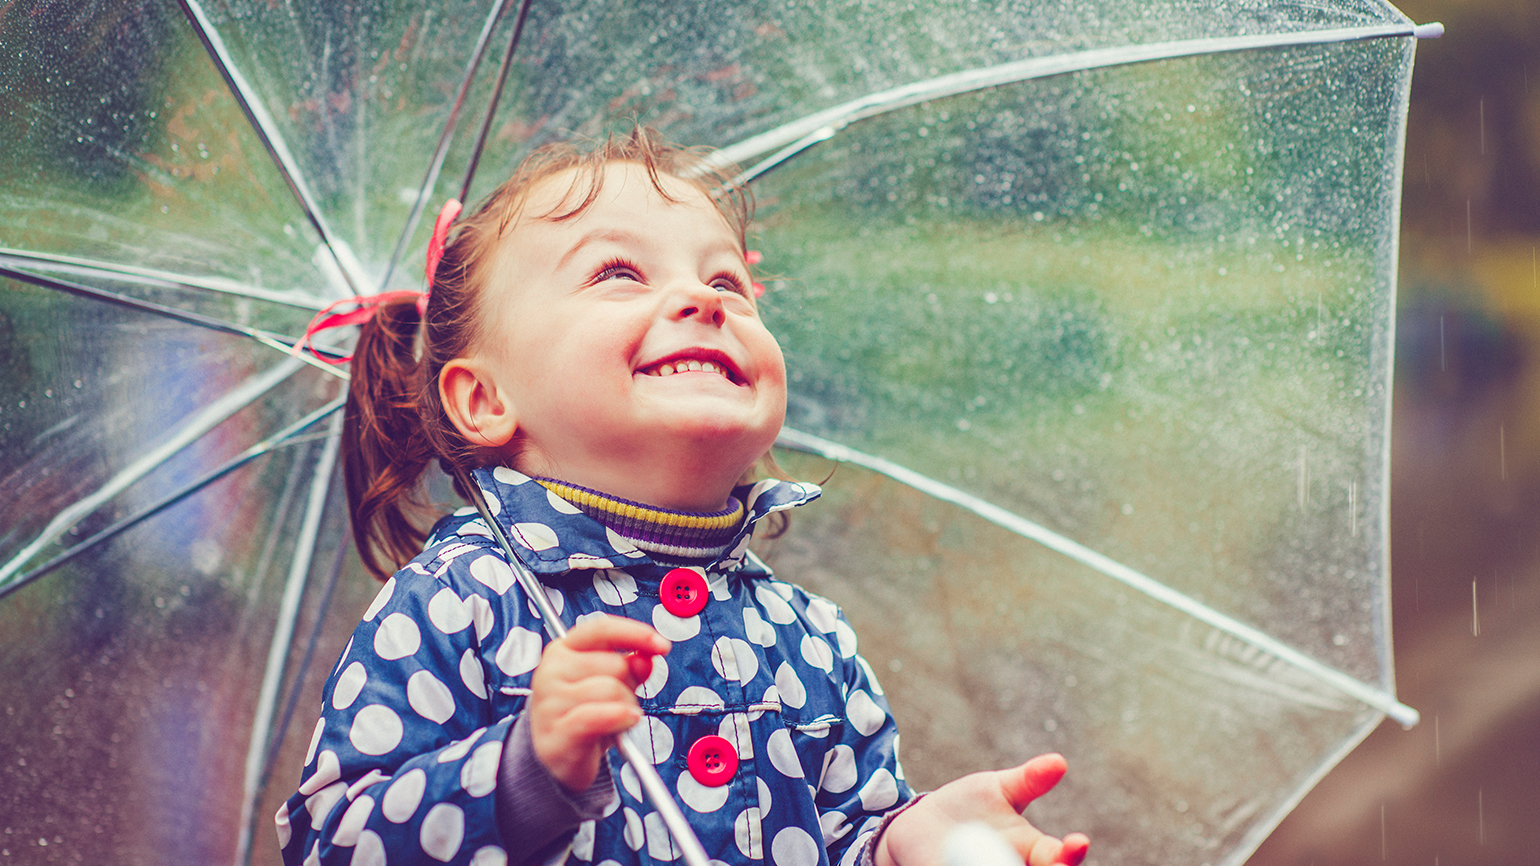 A young girl under an umbrella reaches out to feel the rain on her hand